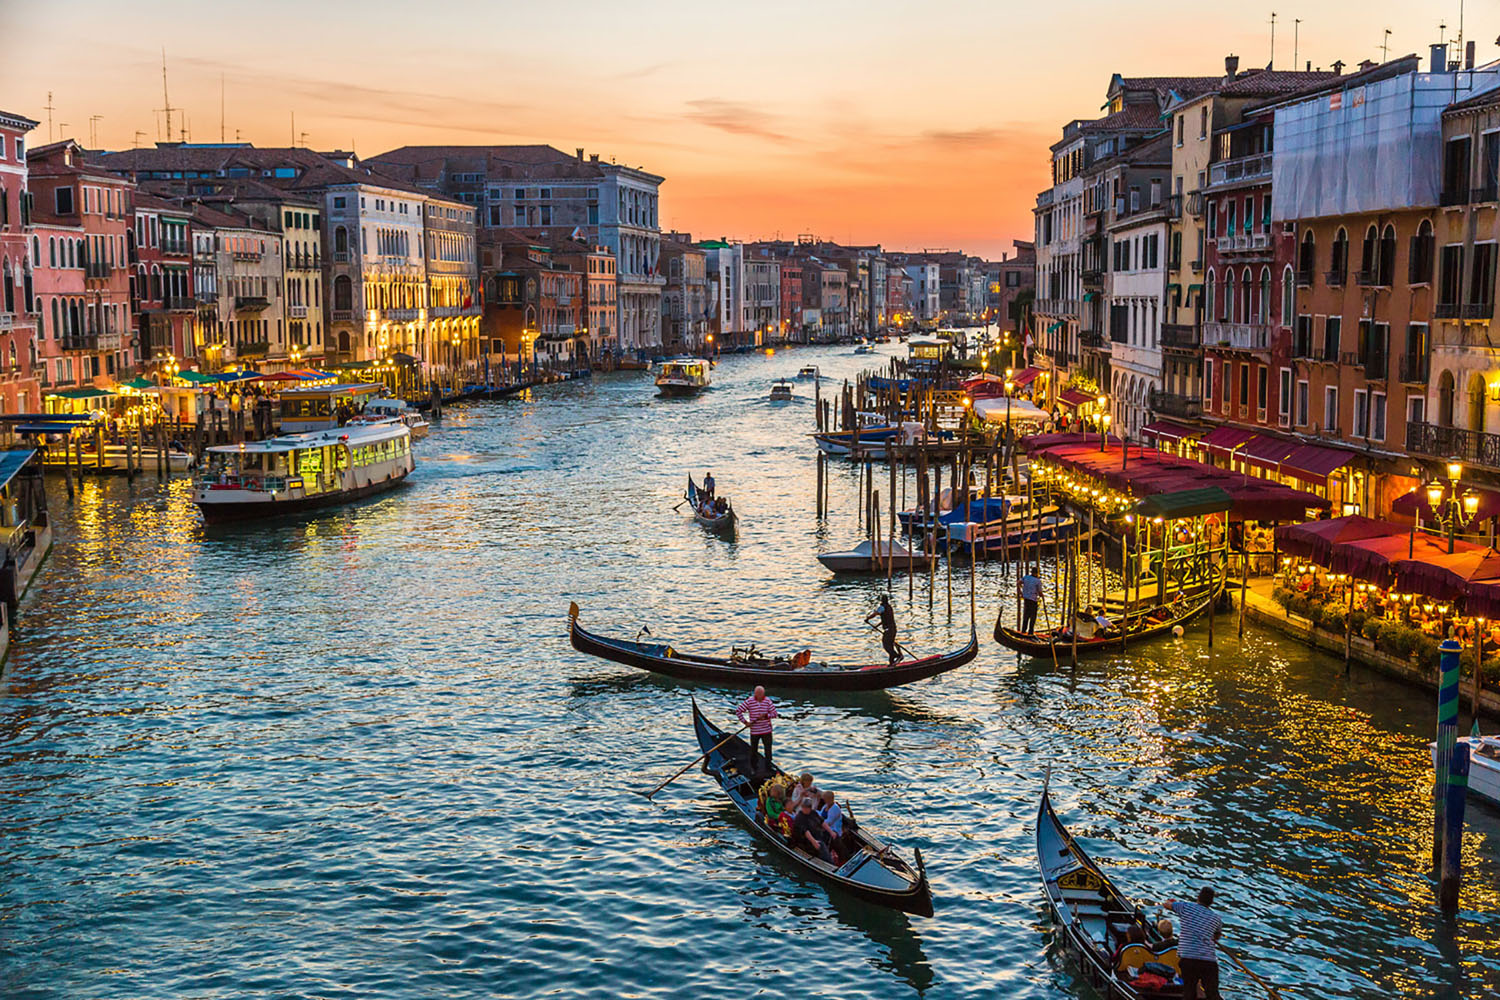 Gondolas in a Venice canal at sunset.